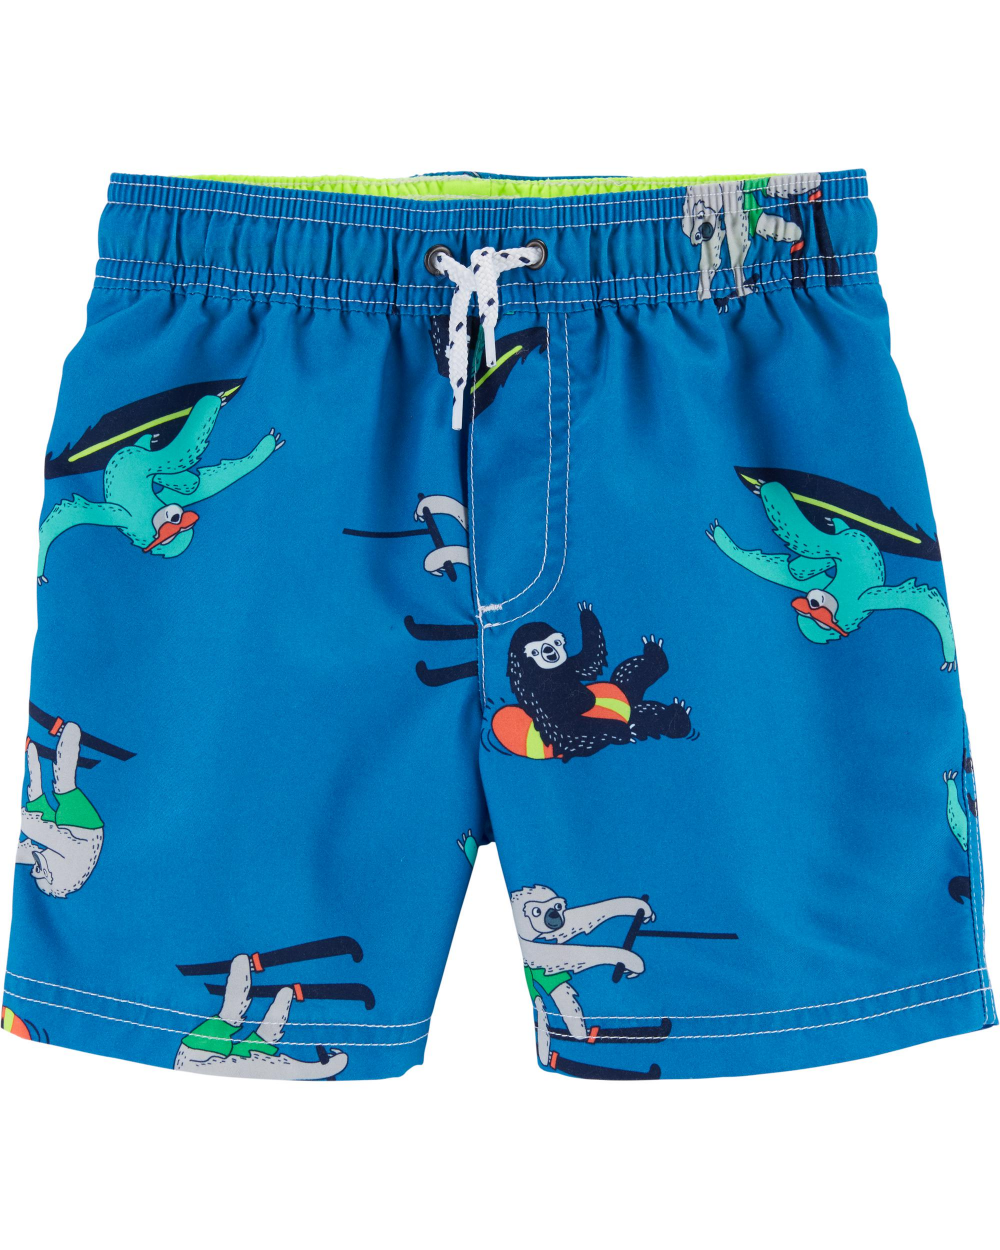 Toddler Boys Two Piece Swimsuit Kids Swim Set Short Sleeve Bathing Suit Trunks and Shirt